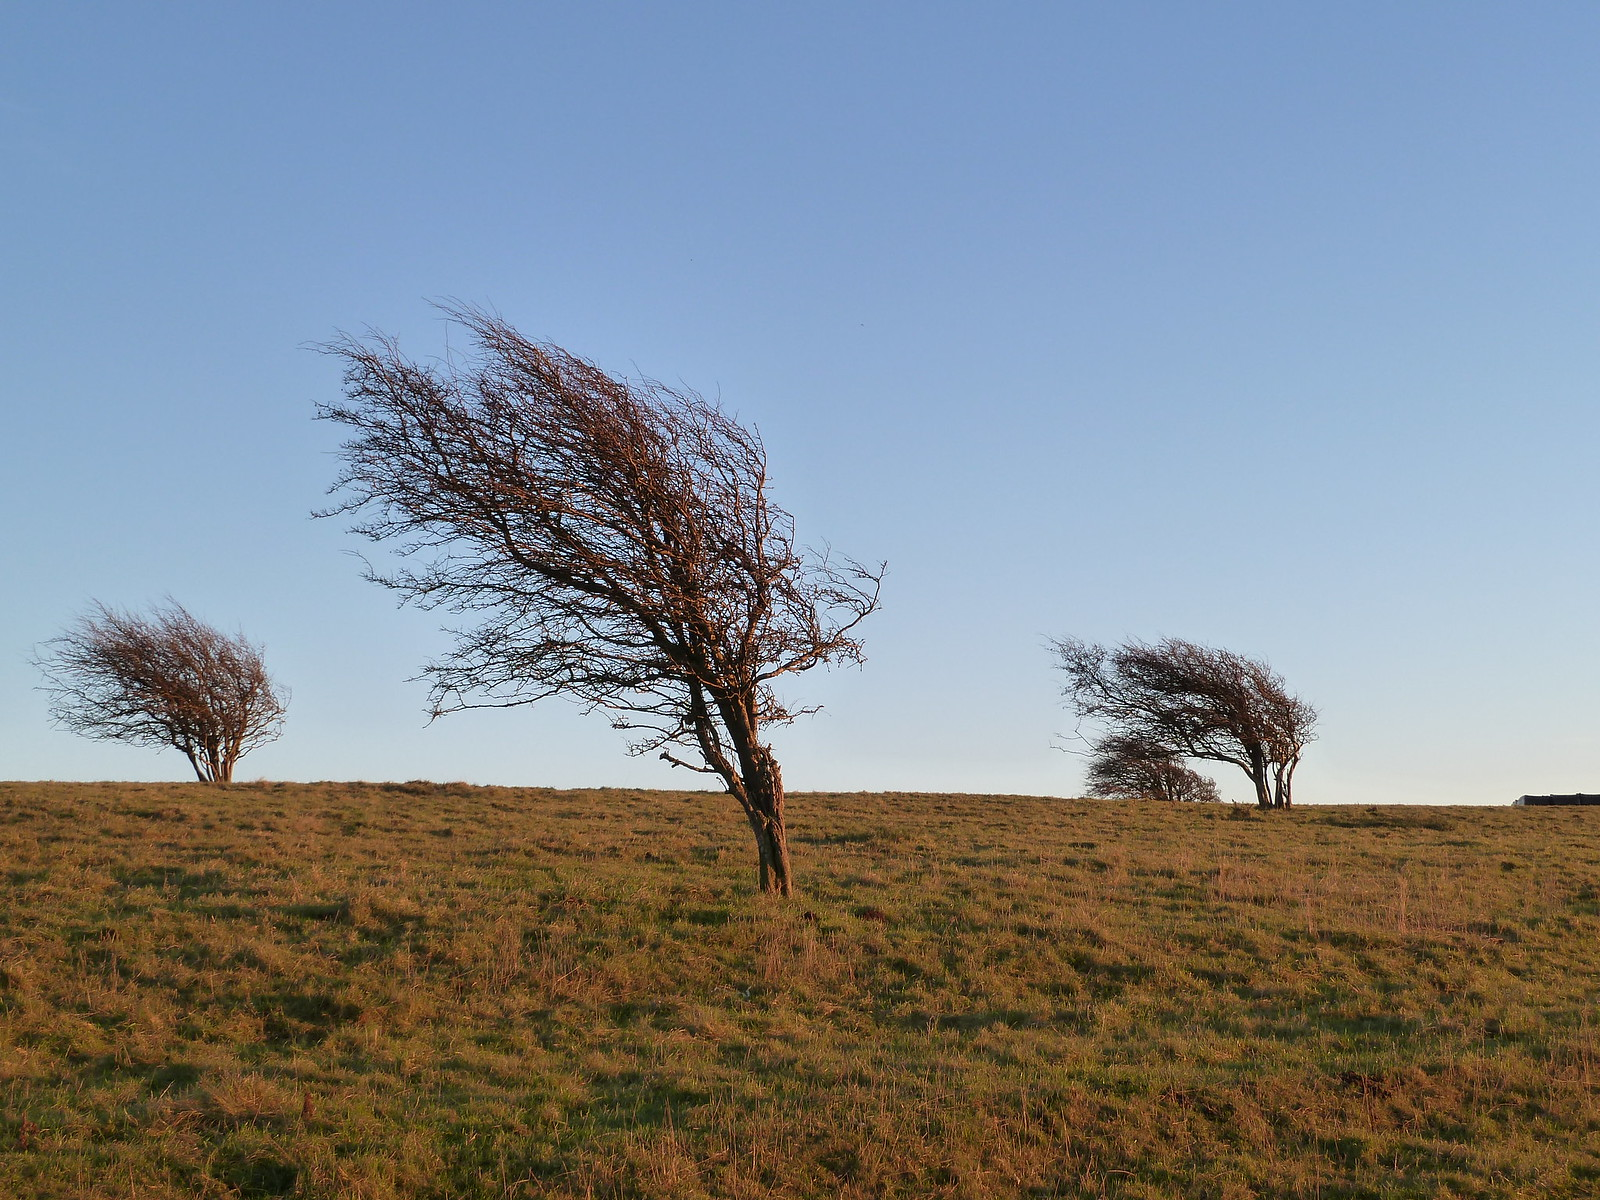 Windswept trees in late afternoon light (Berwick to Birling) Trees bent by the wind are still on a calm day on South Downs Way.